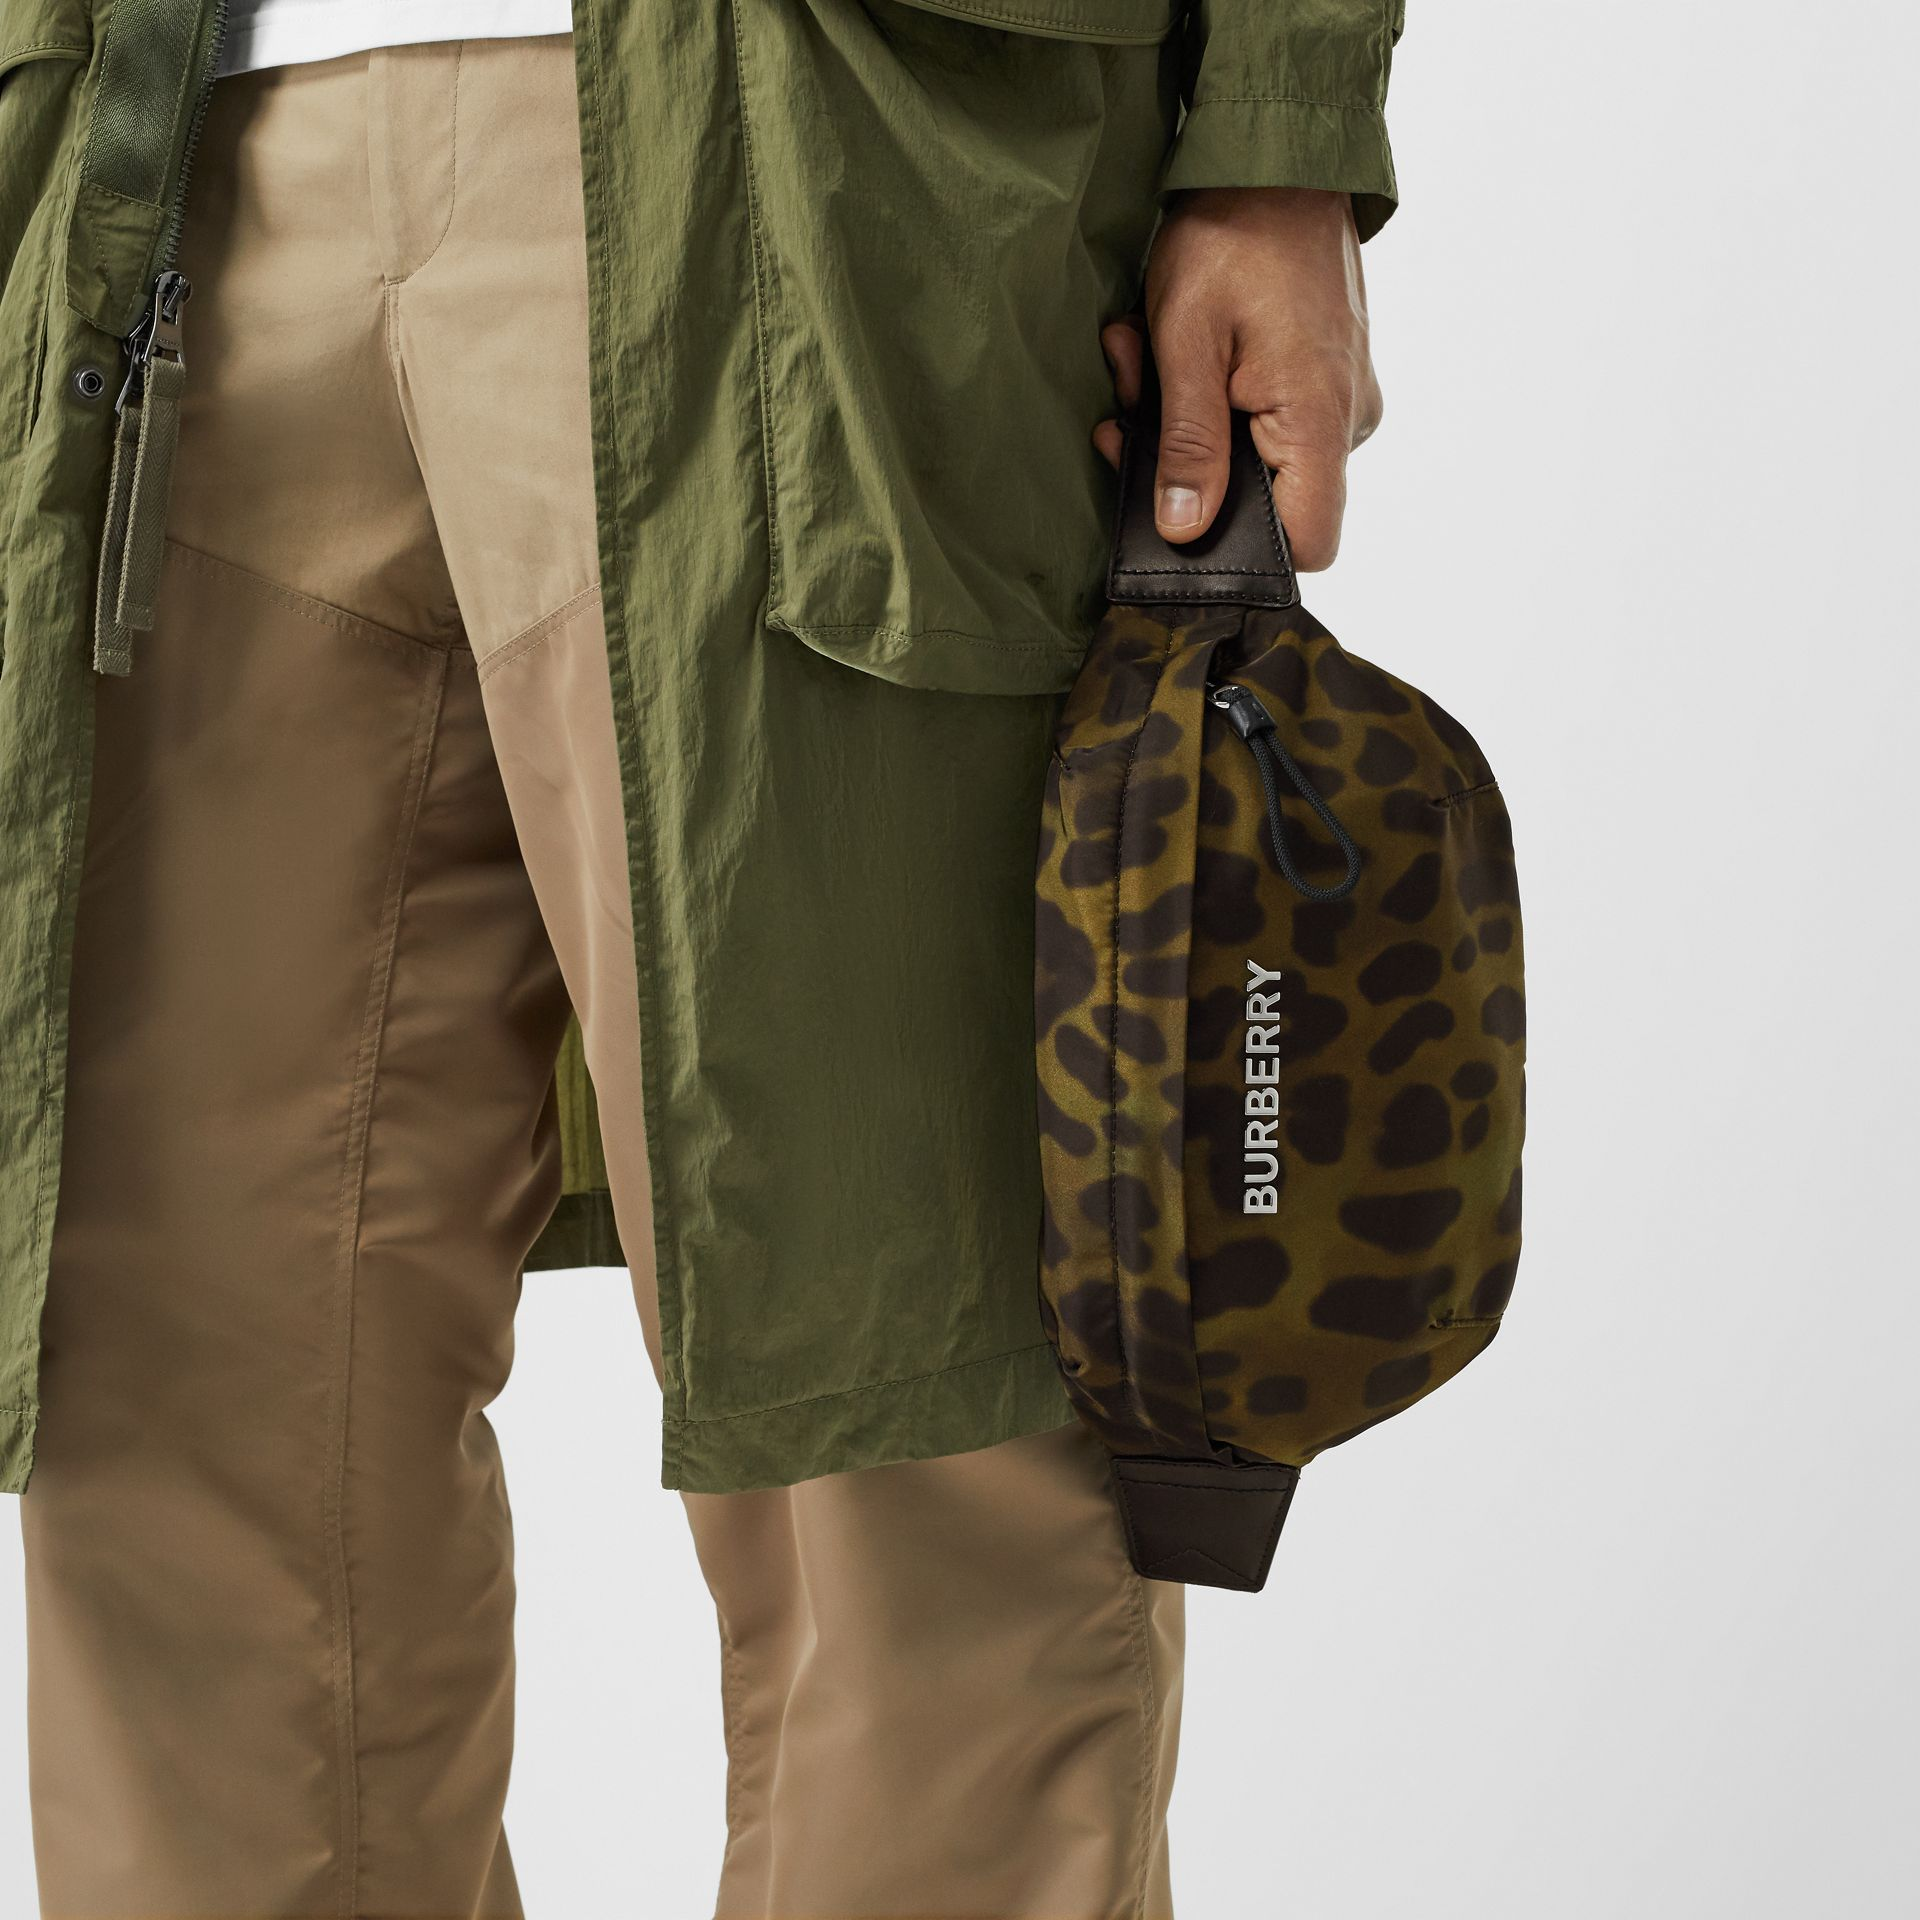 Medium Animal Print Bum Bag in Khaki Green - Men | Burberry - gallery image 3